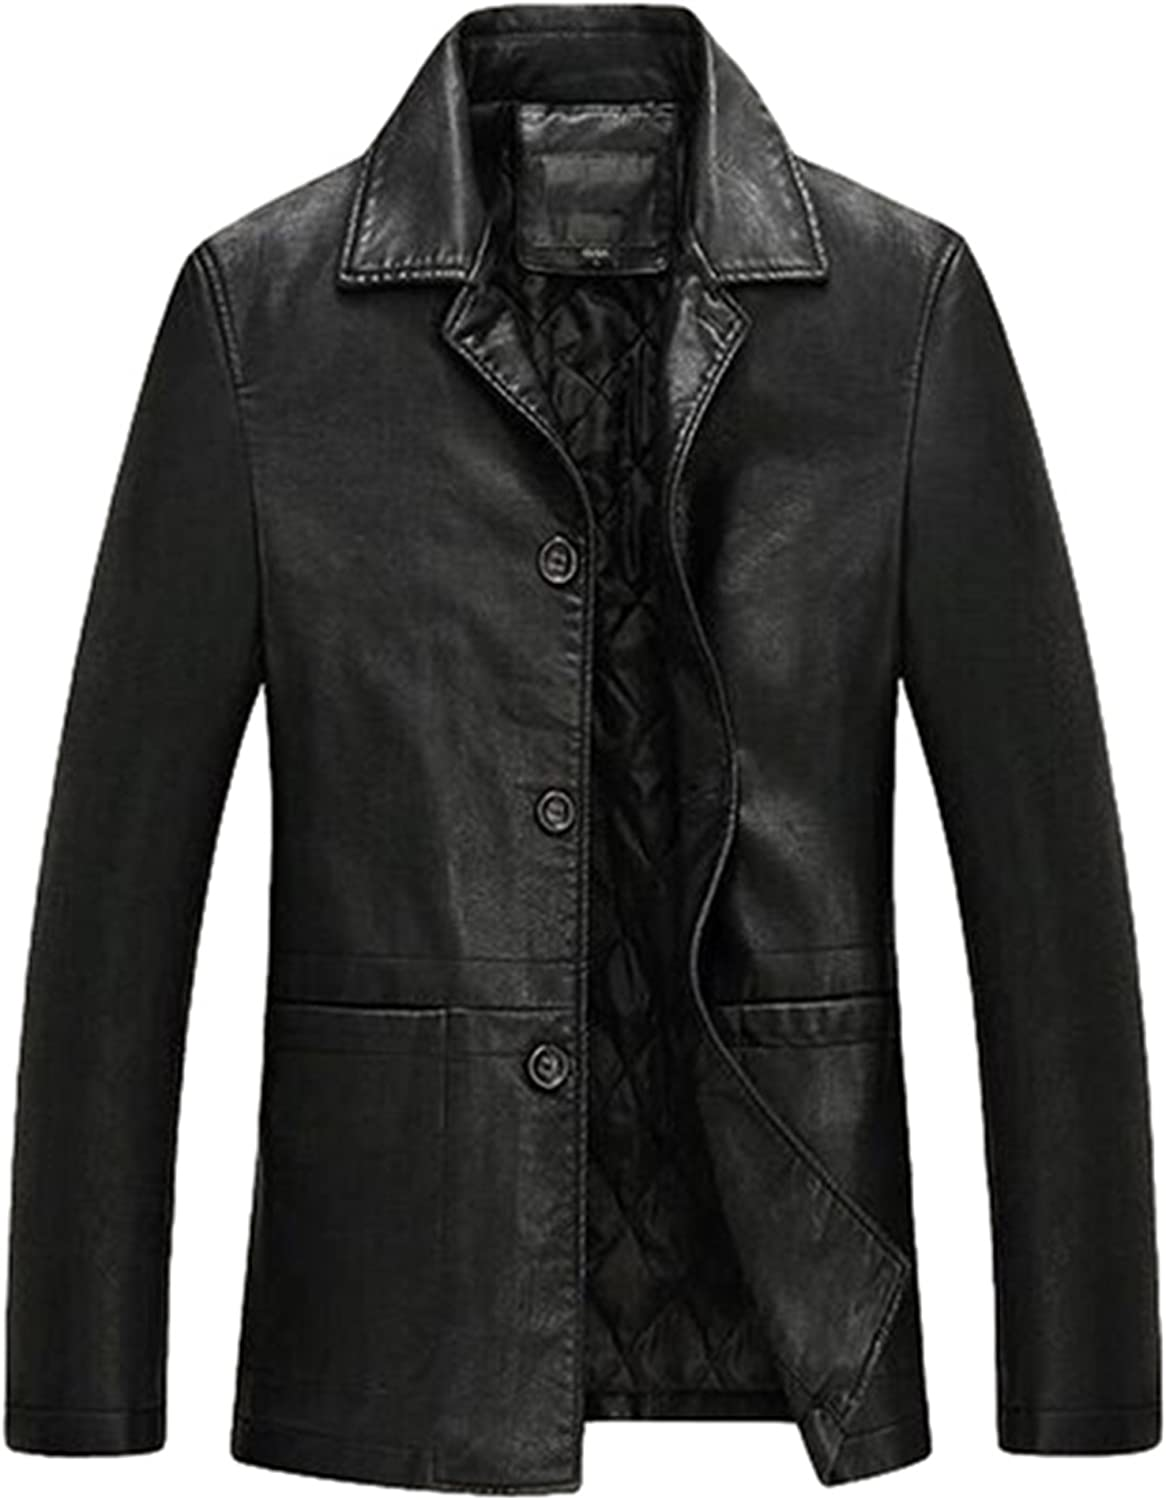 LOVE TIME Men Business Casual Leather Jacket Buttons Revers Trench Coat Leather Outwear